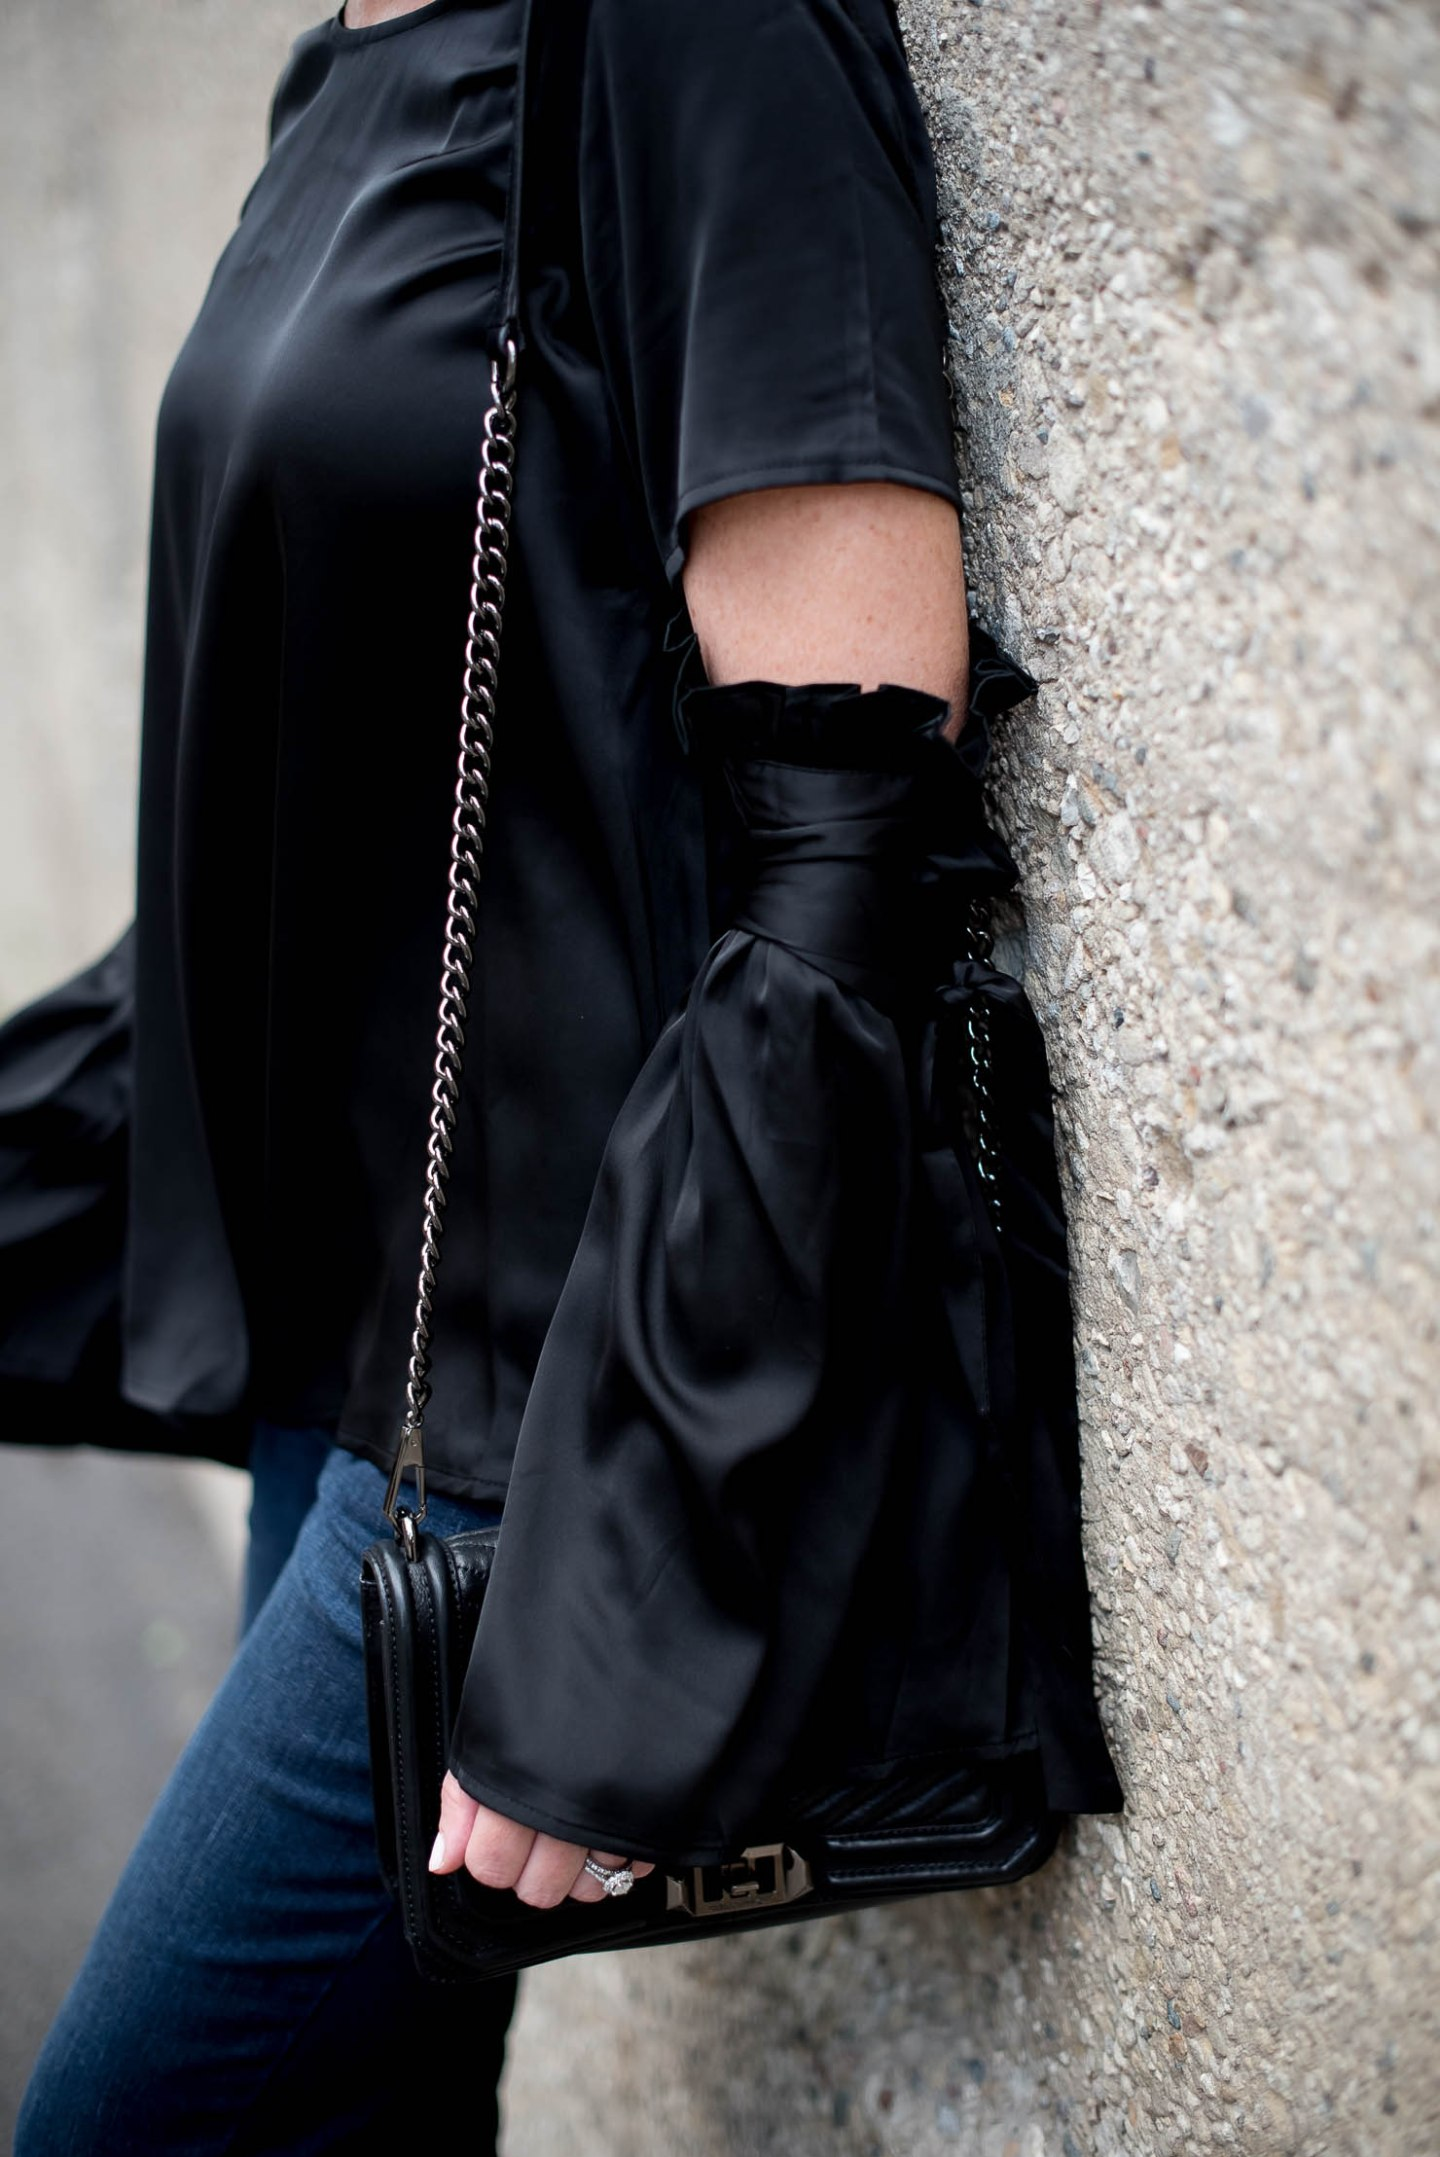 shein-blck-satin-bell-sleeve-blouse-with-ribbobs-dark-wash-flared-jeans-fall-trends-2016-monochromatic-fashion-look-for-less